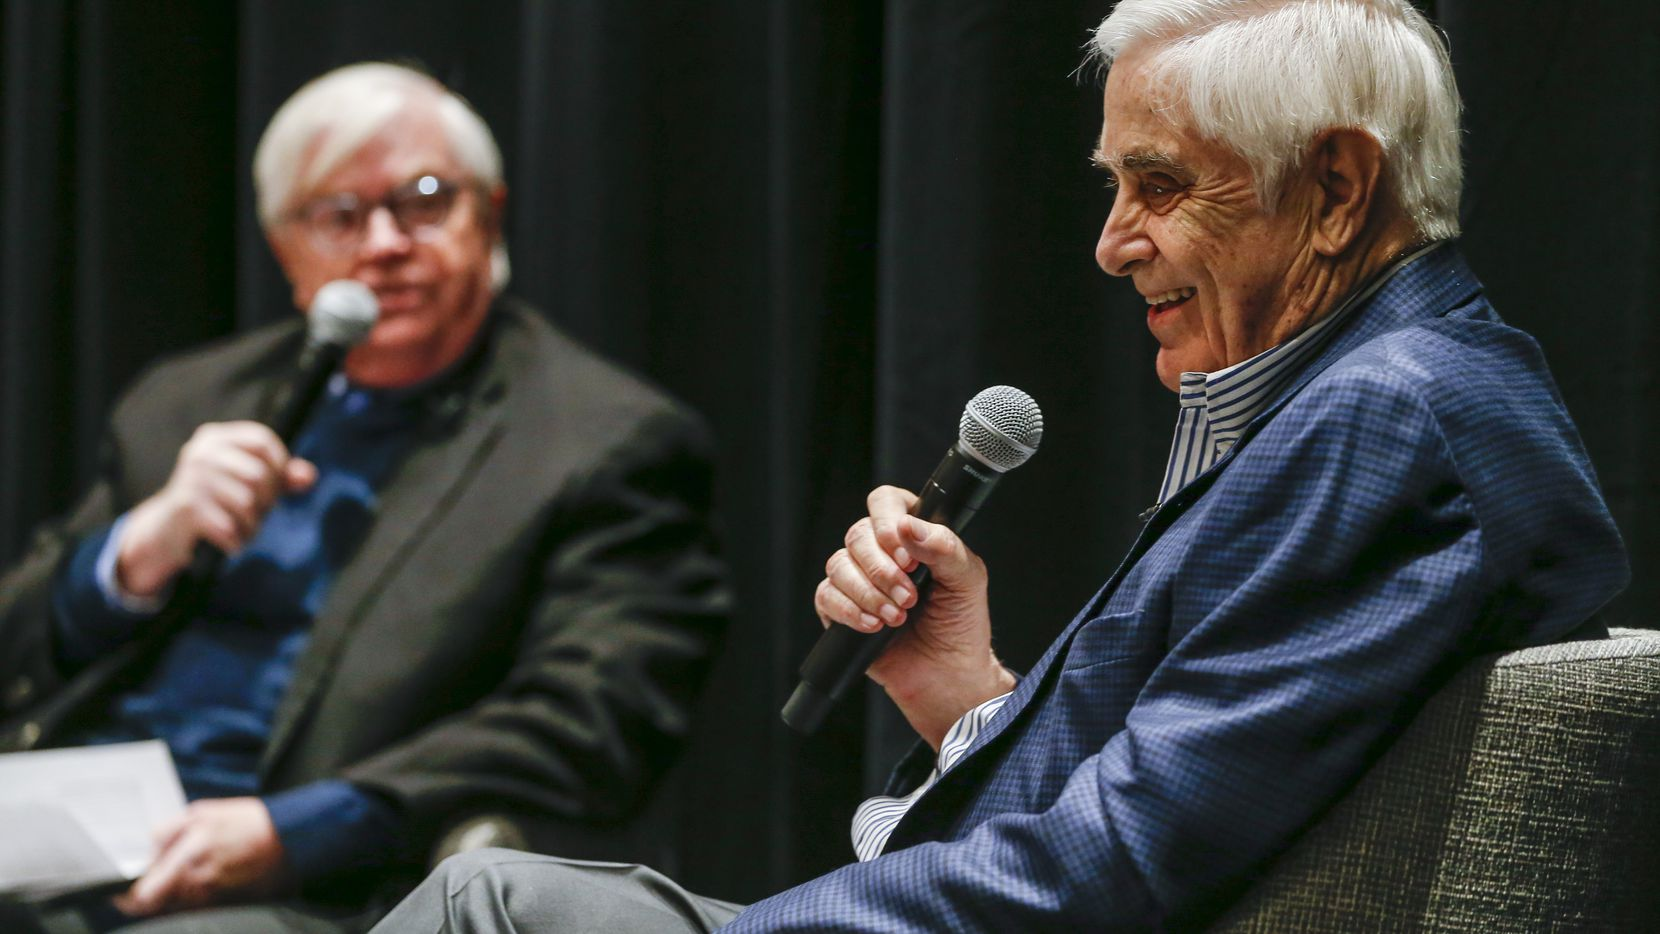 Arts and Feature Writer Michael Granberry, left, interviews former Dallas Morning News reporter Hugh Aynesworth during a Duets event on Wednesday, Oct. 30, 2019 in Dallas. In November 1963, Aynesworth witnessed the JFK assassination in Dealey Plaza and saw suspected assassin Lee Harvey Oswald gunned down by Jack Ruby in the basement of the old Dallas police station.